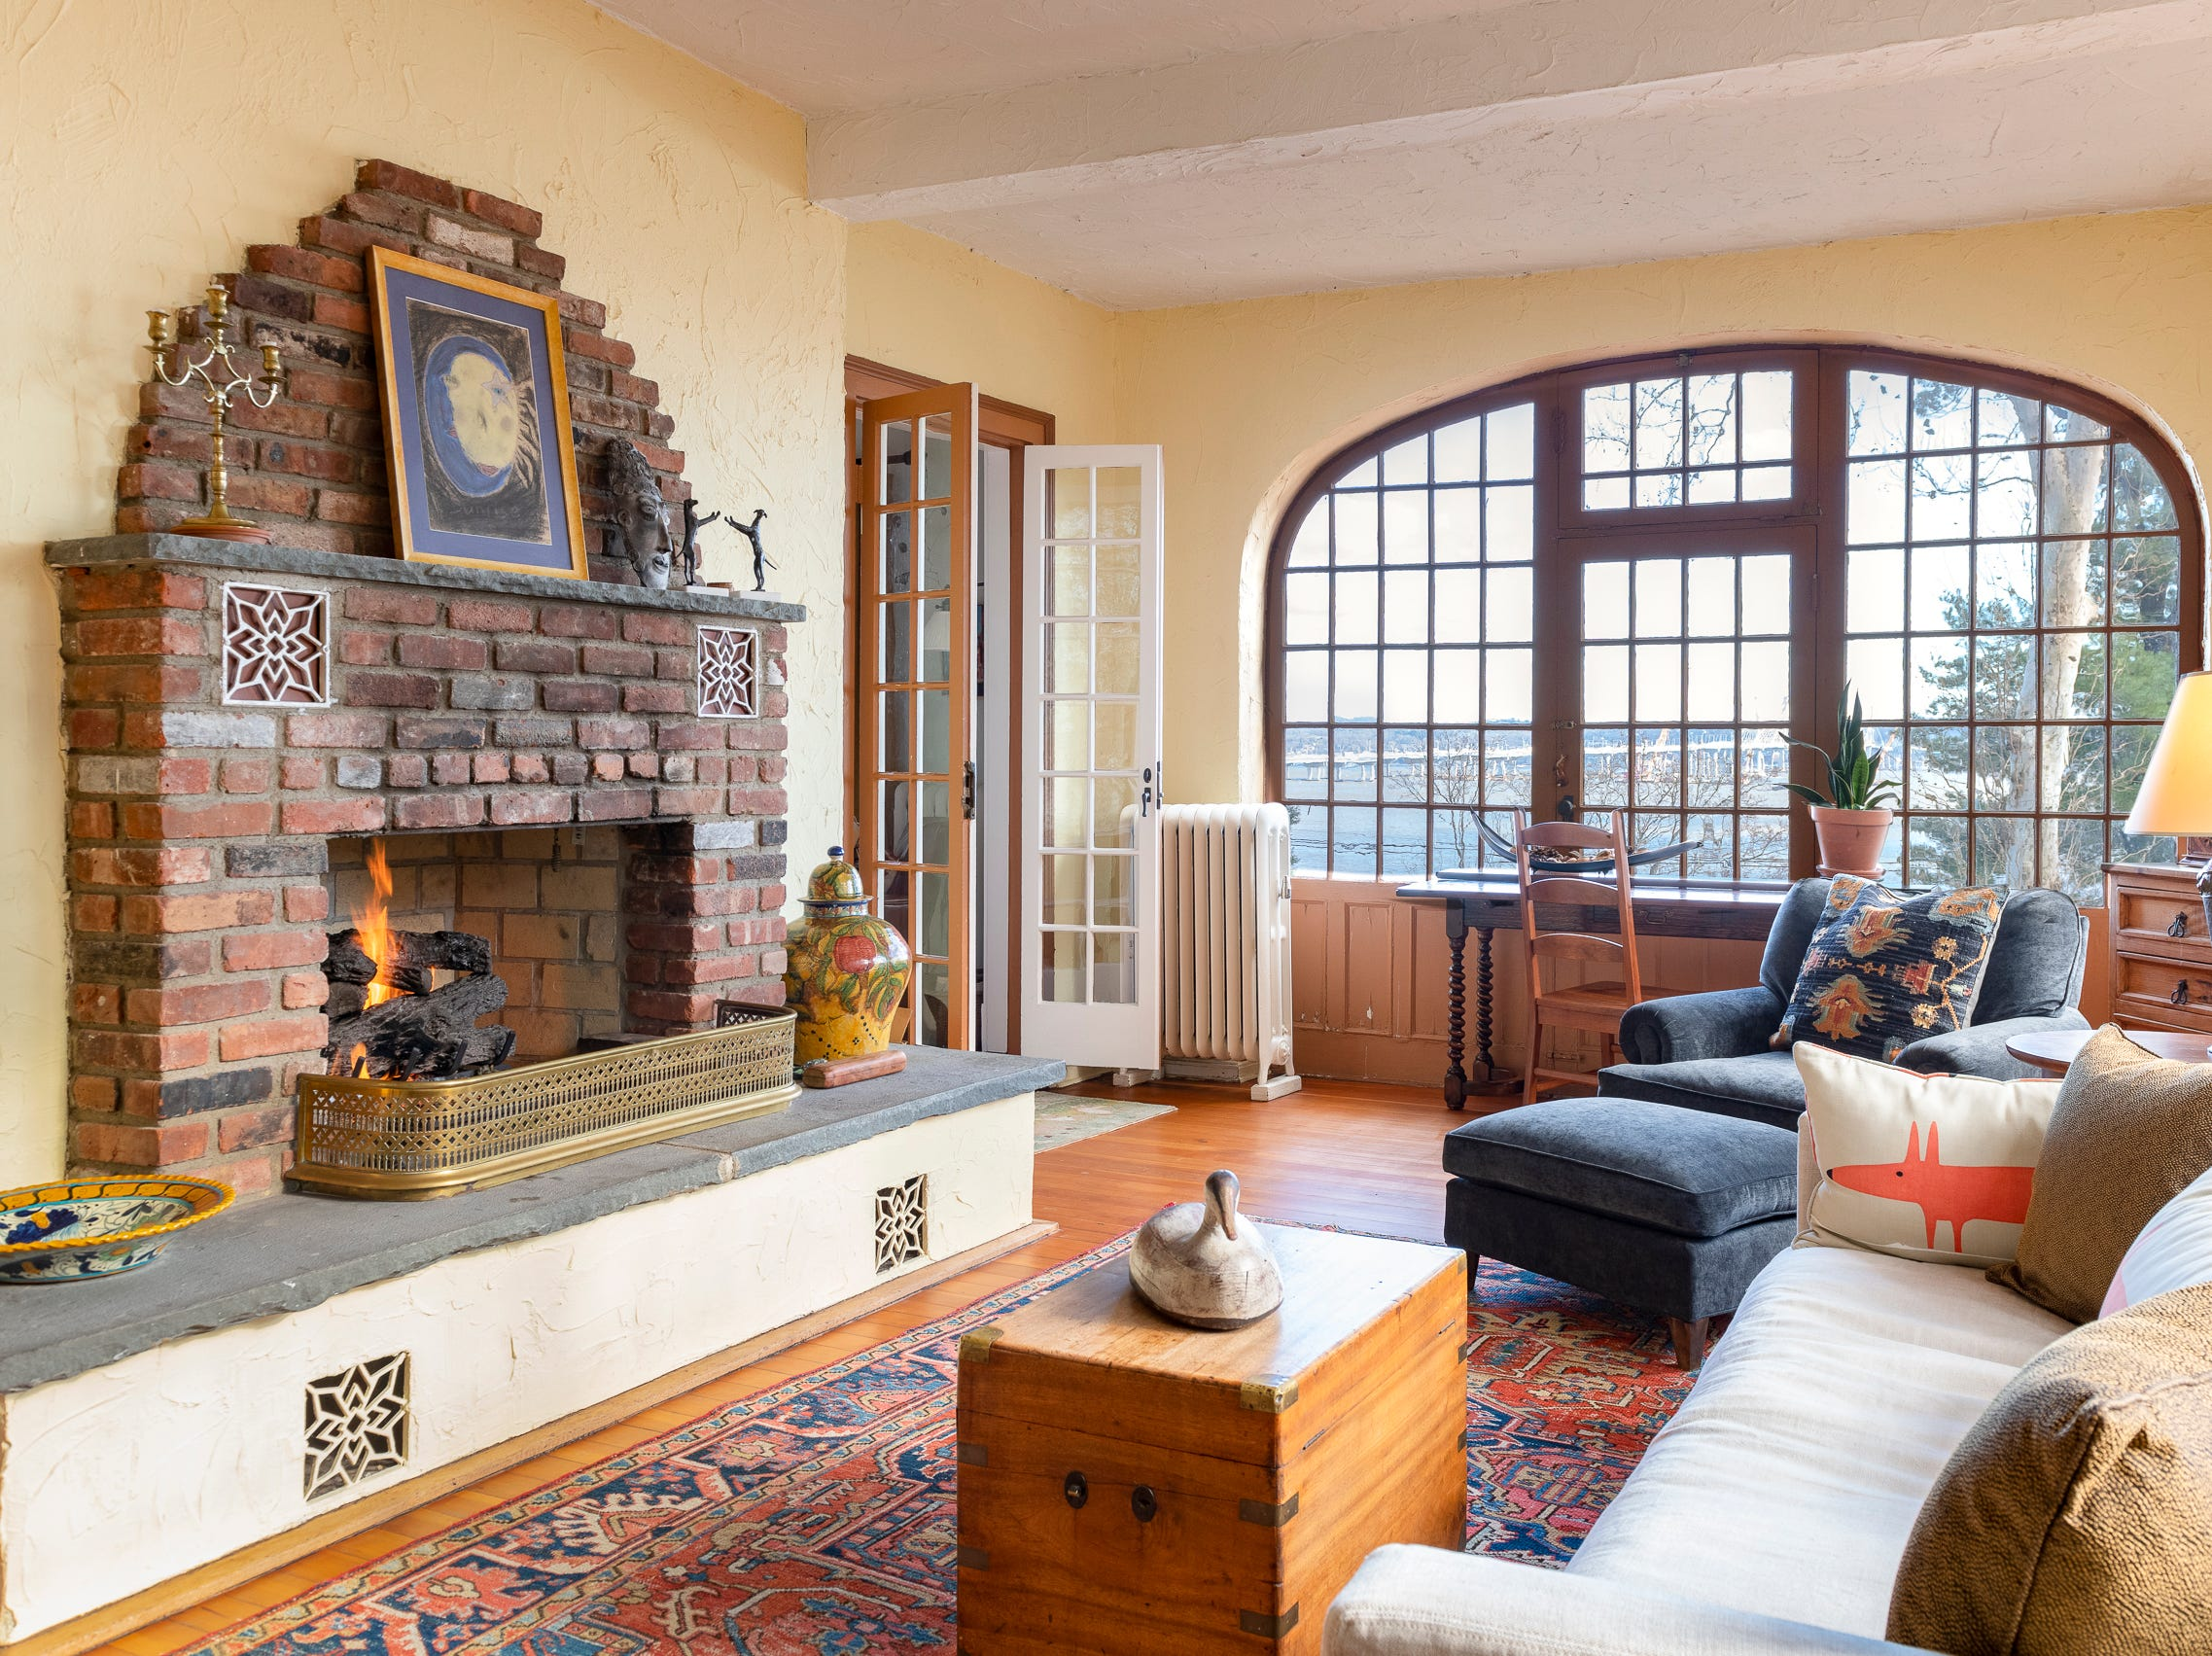 The home boasts four working fireplaces.